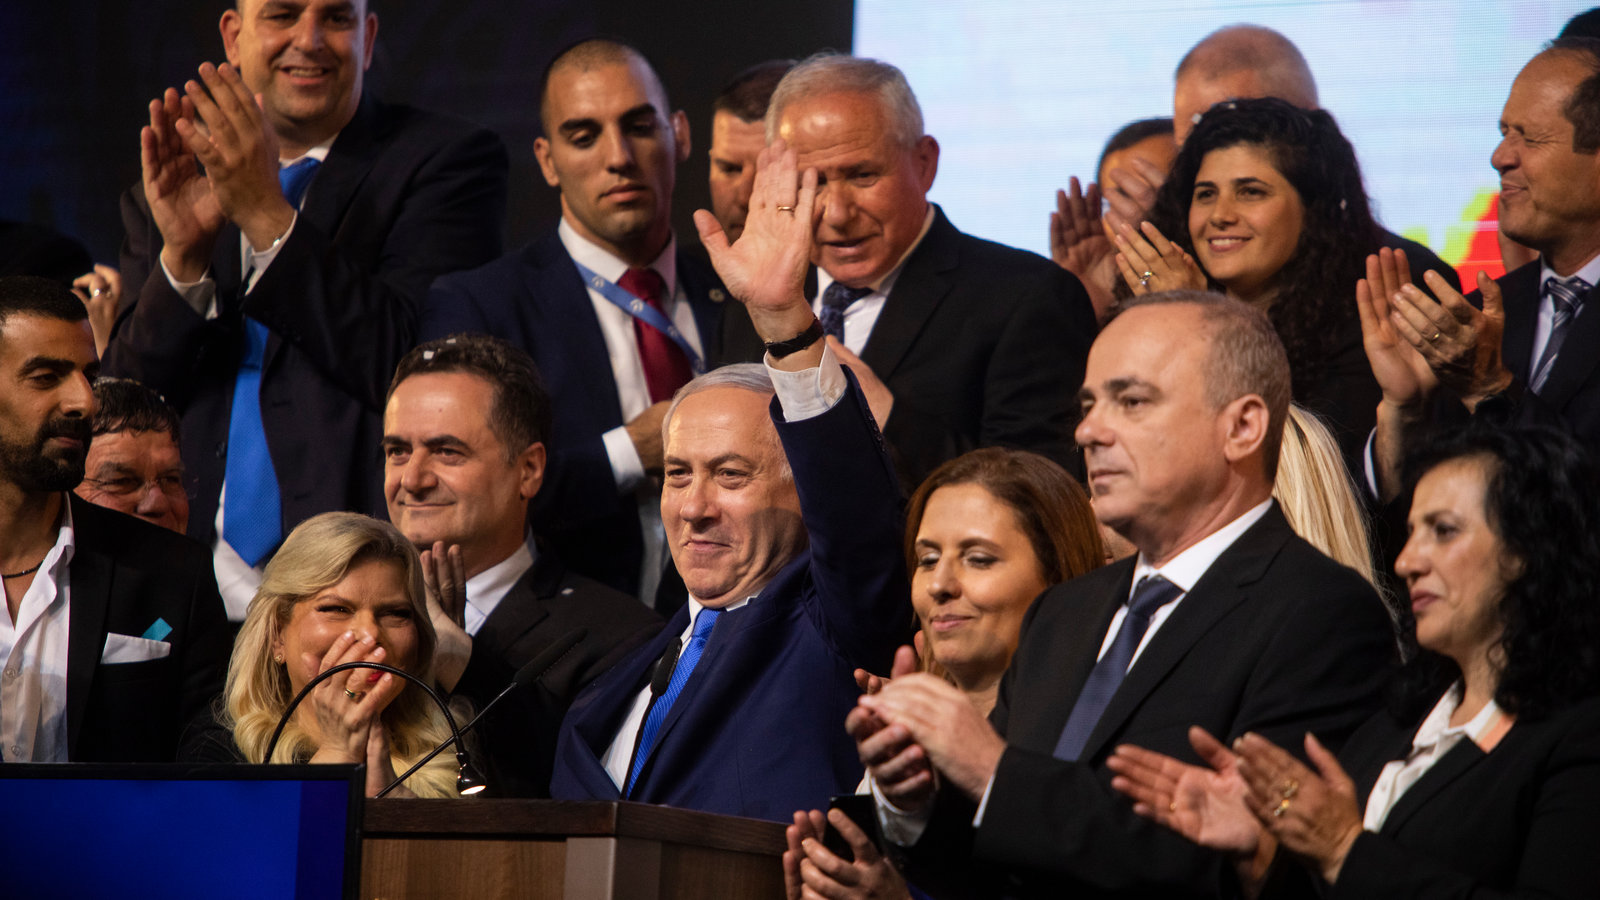 Israel S Netanyahu Struggles To Form A Government As Time